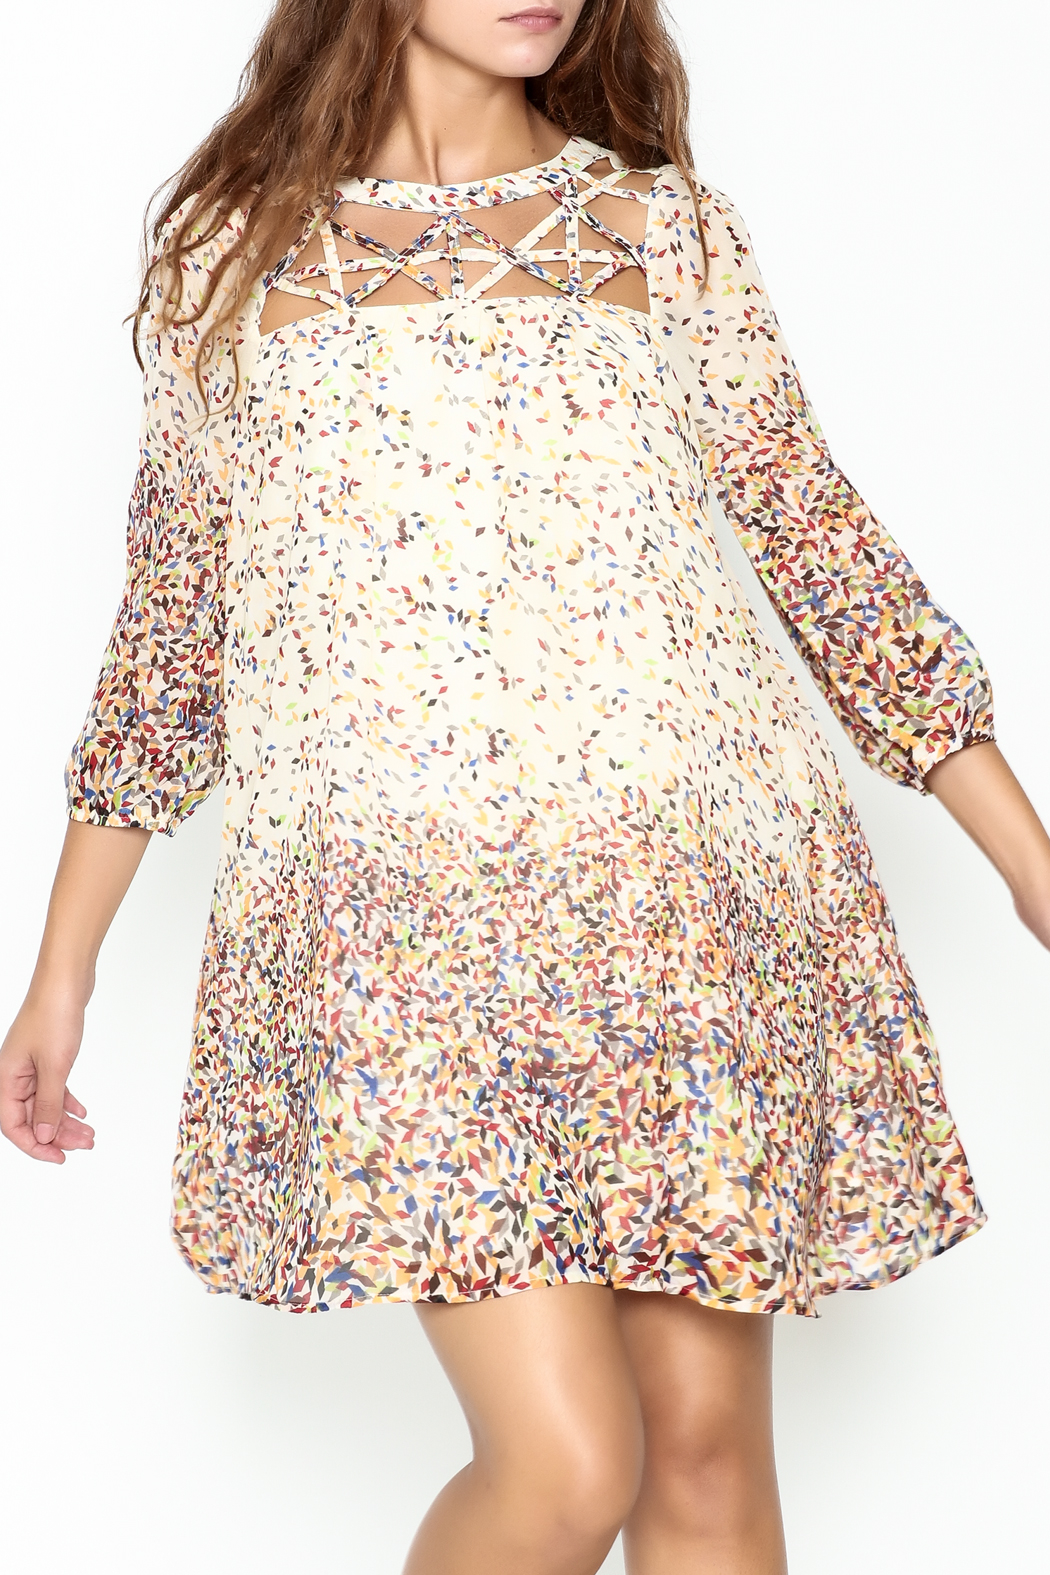 KORI AMERICA Confetti Dress - Main Image